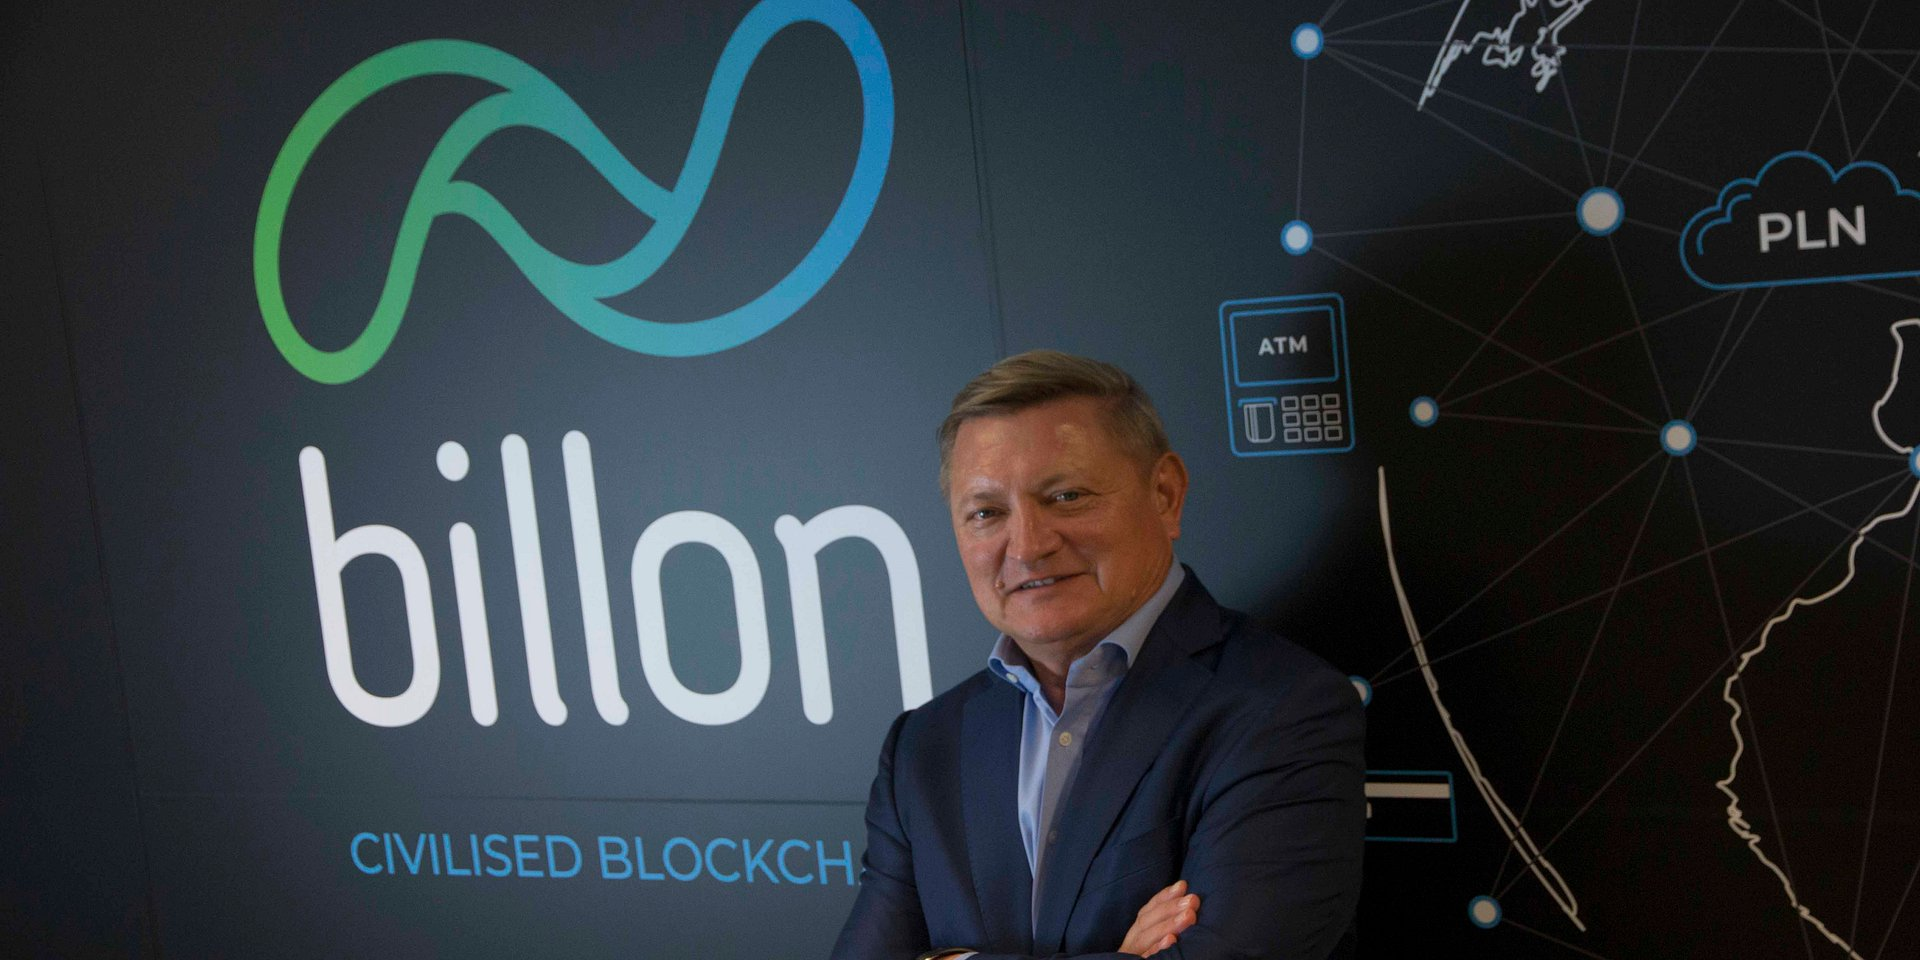 Wojtek Kostrzewa is the new CEO of Billon Group